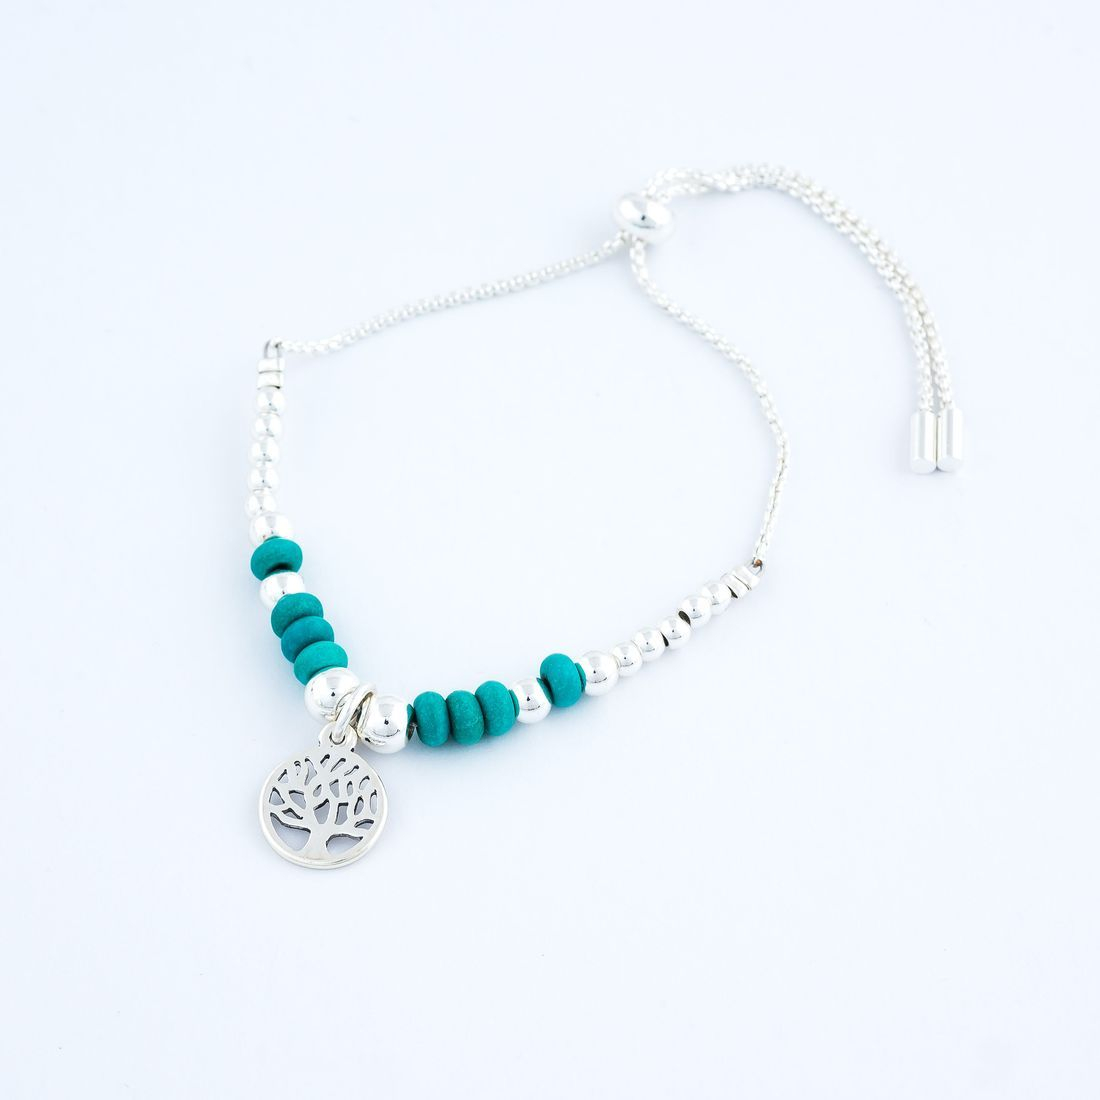 Charm Bracelet - Tree of Life with Sea Green Beads, adjustable (BR80)` £8.99